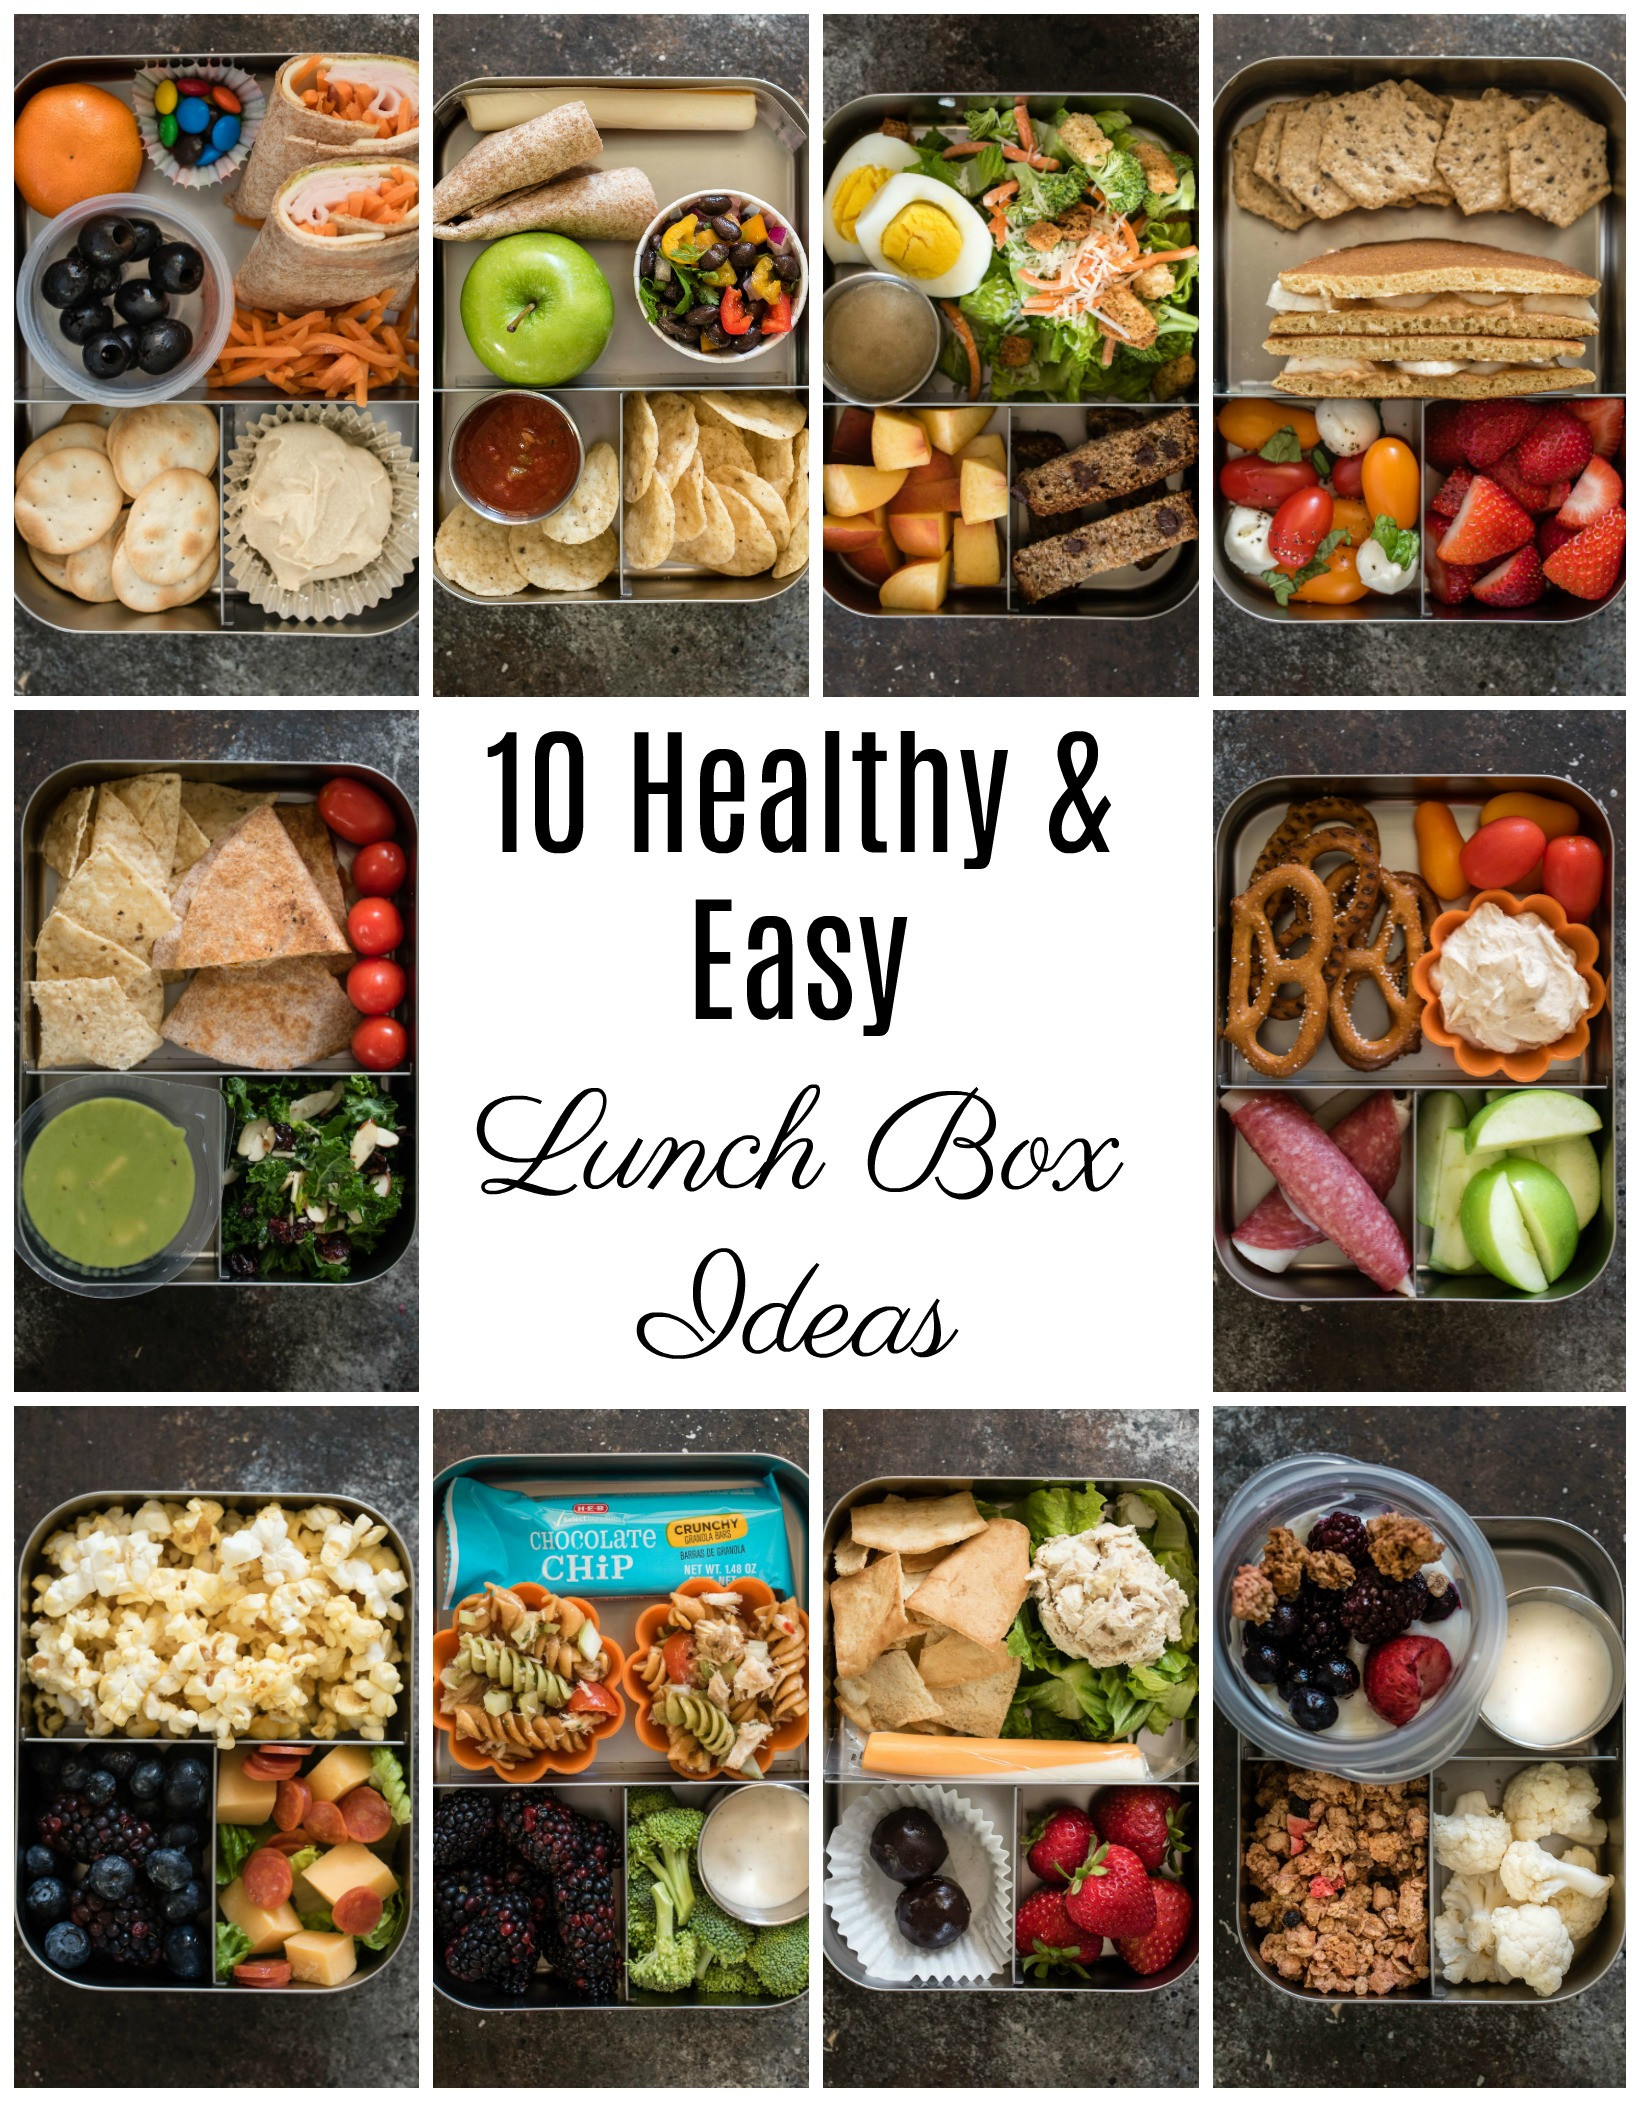 Easy And Healthy Lunches For Work  10 Healthy Lunch Box Ideas